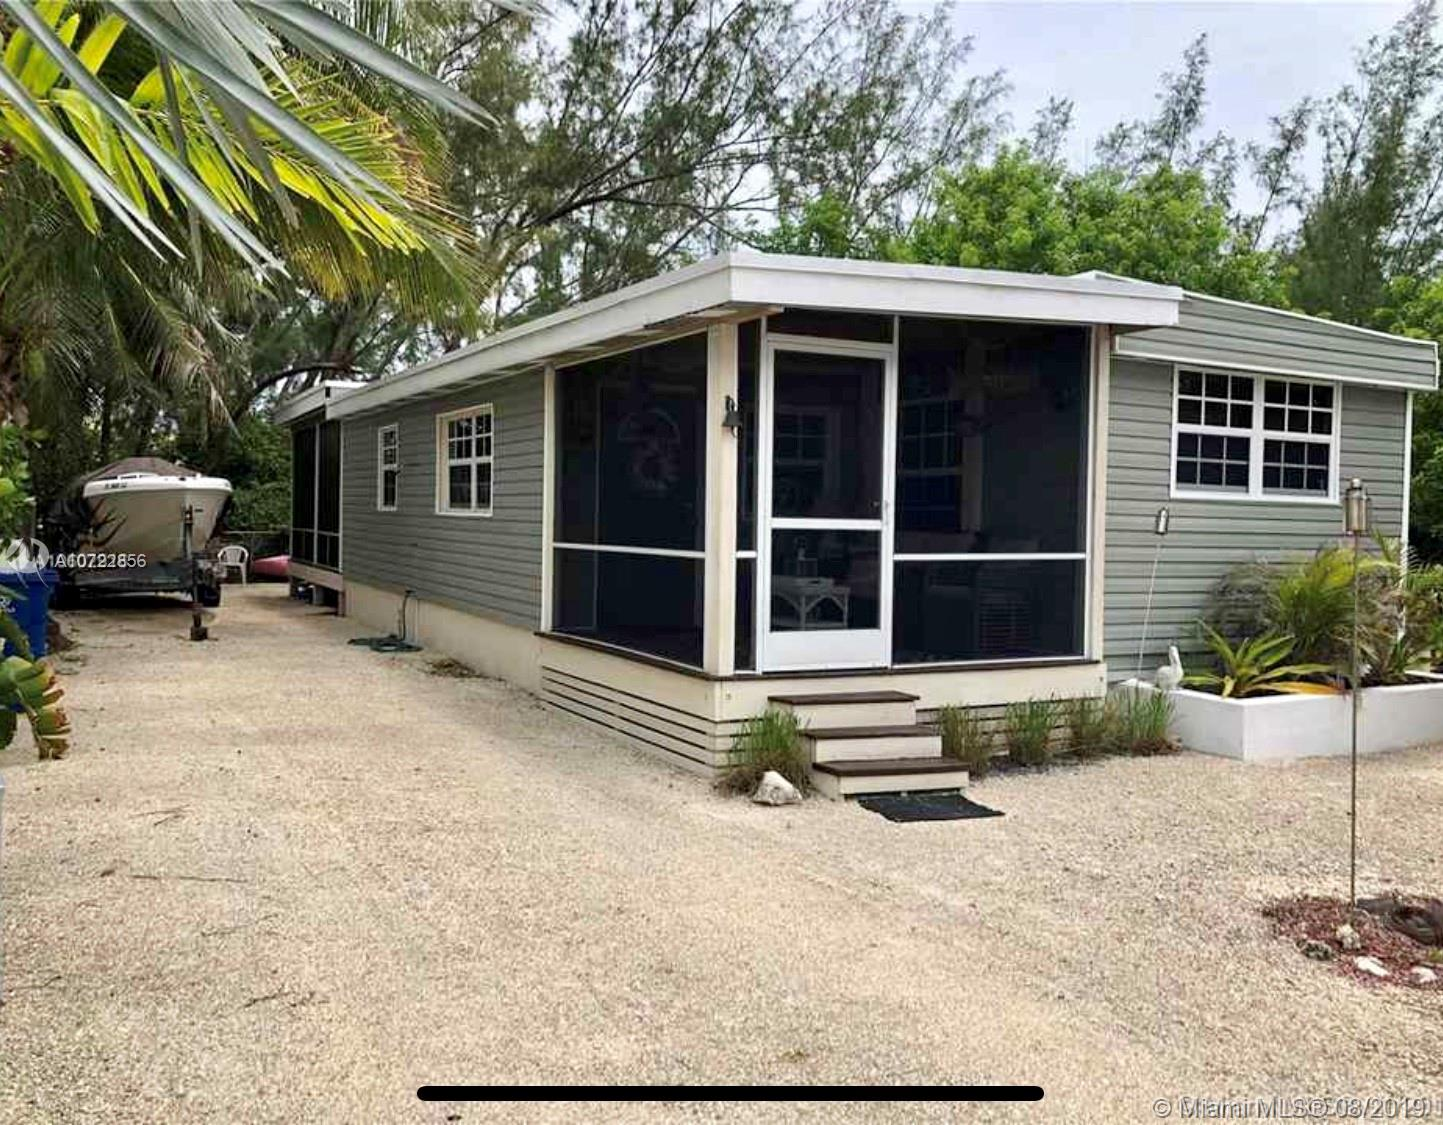 222 Buttonwood Ave, Other City - Keys/Islands/Caribb, FL 33037 - Other City - Keys/Islands/Caribb, FL real estate listing